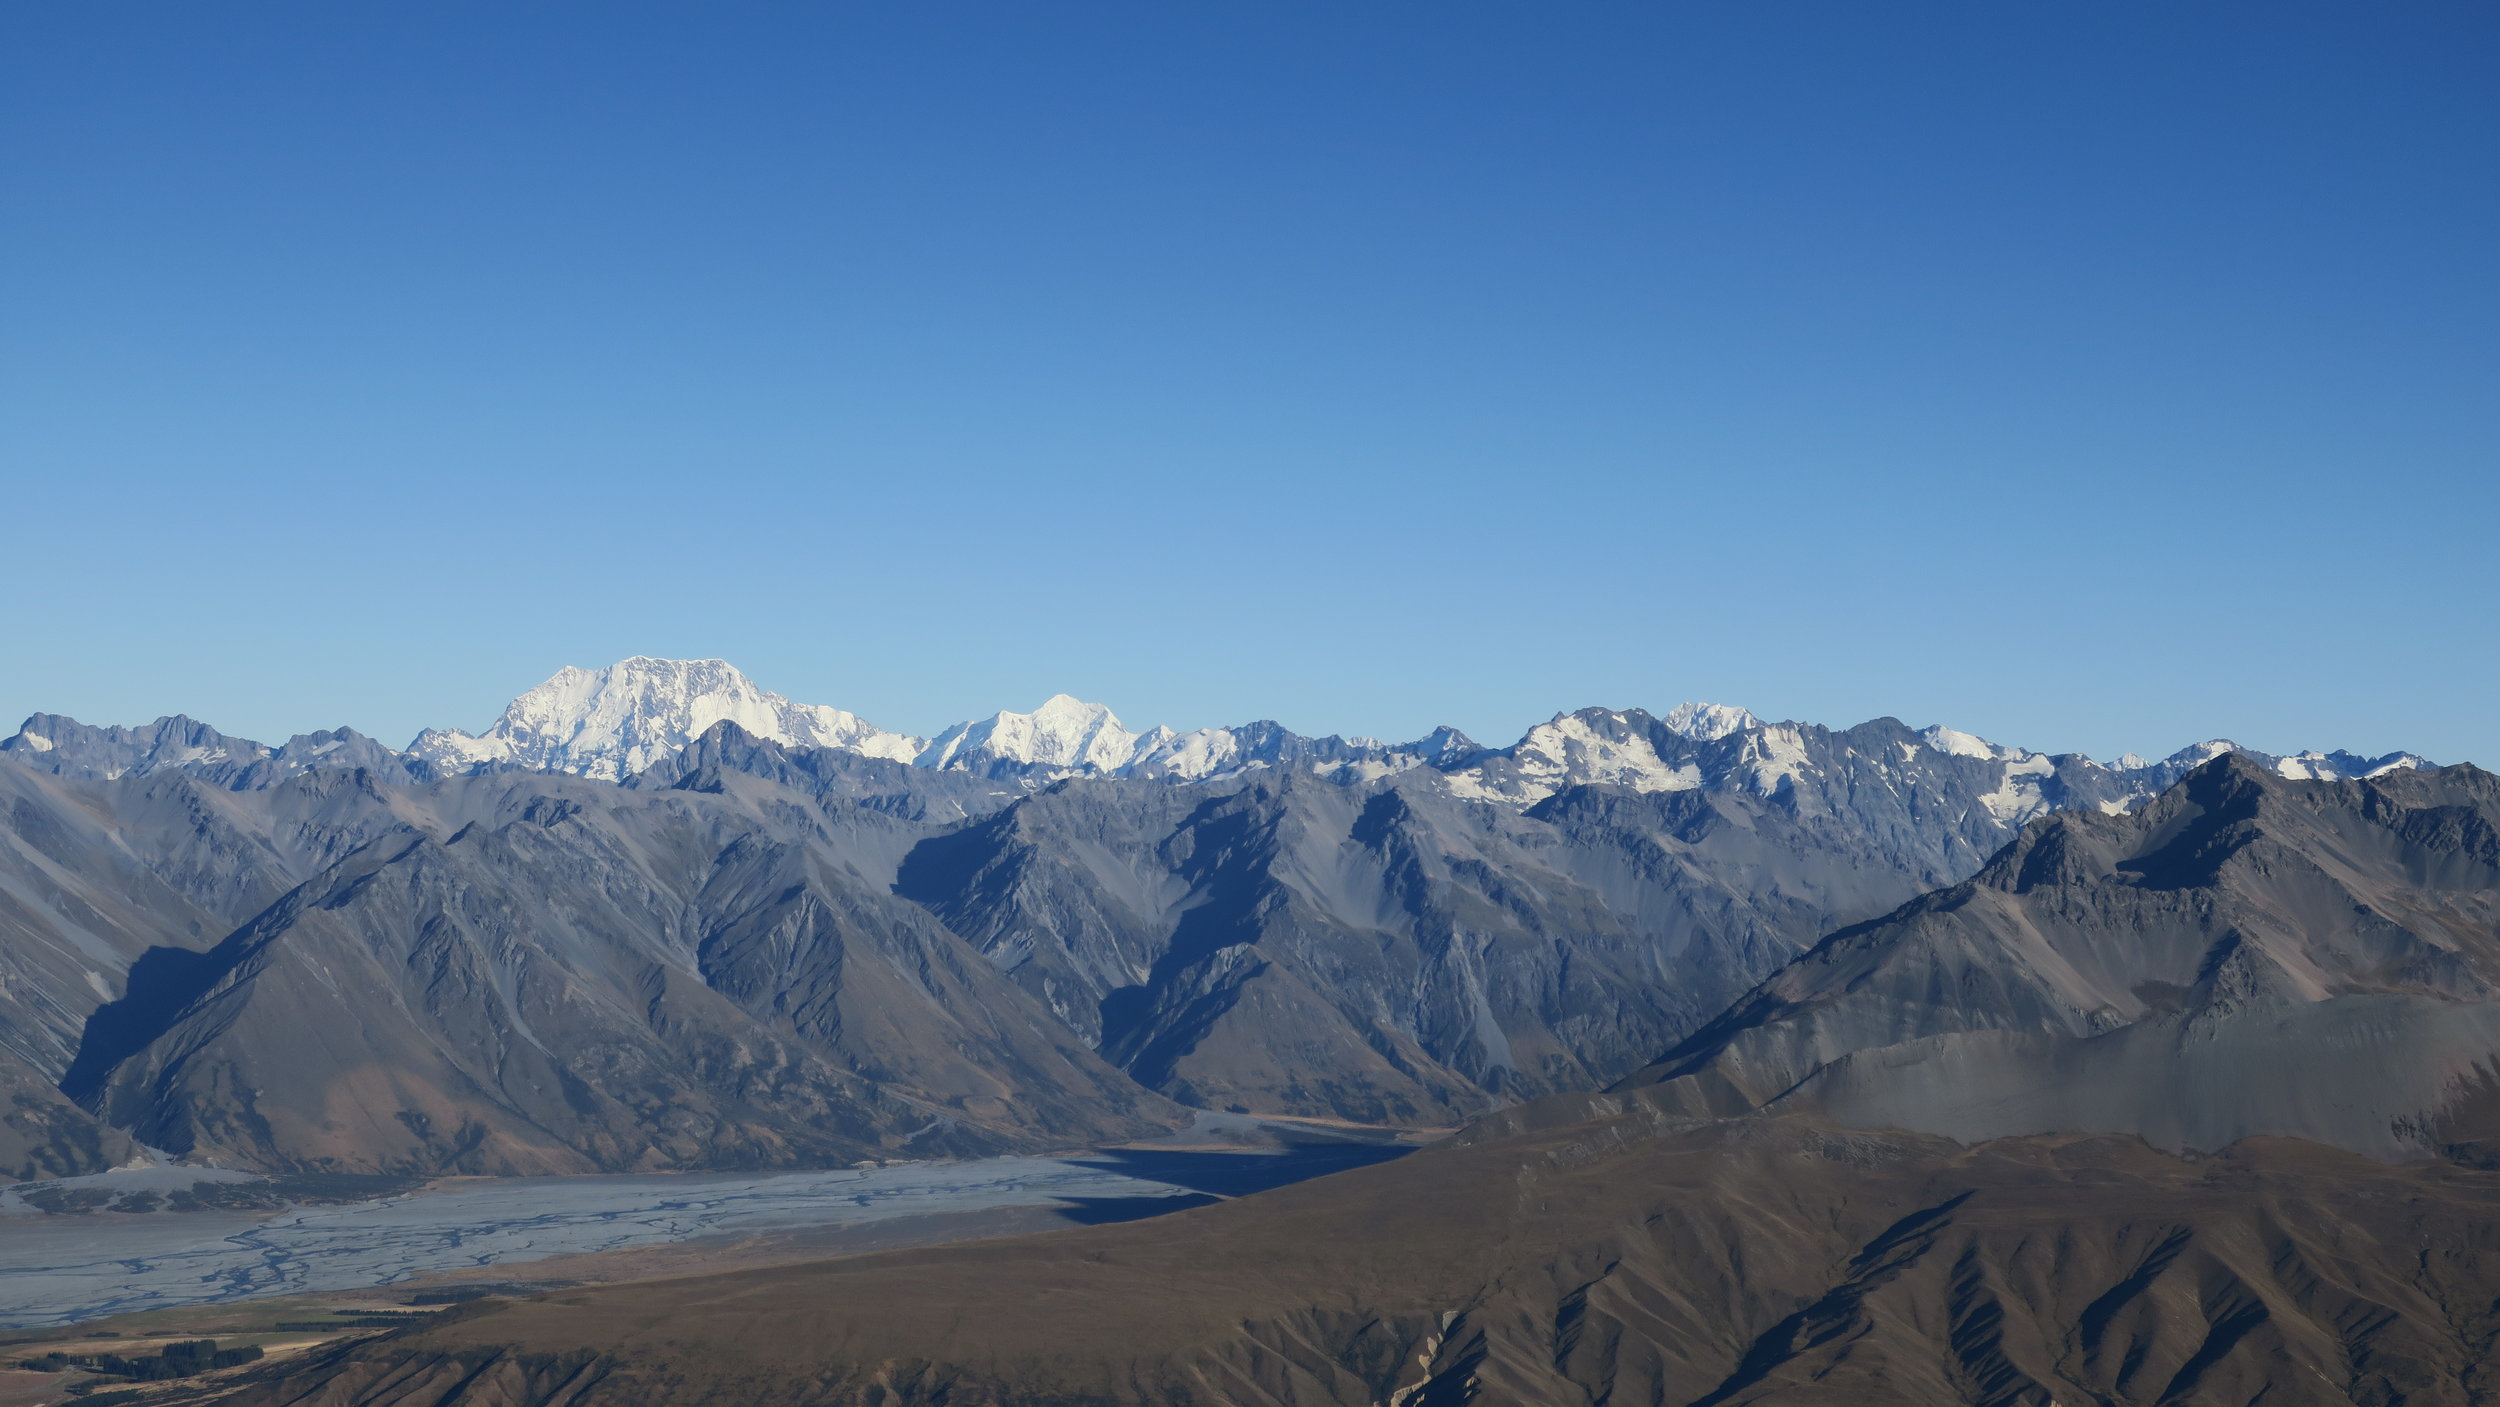 Mount Cook and the Southern alps